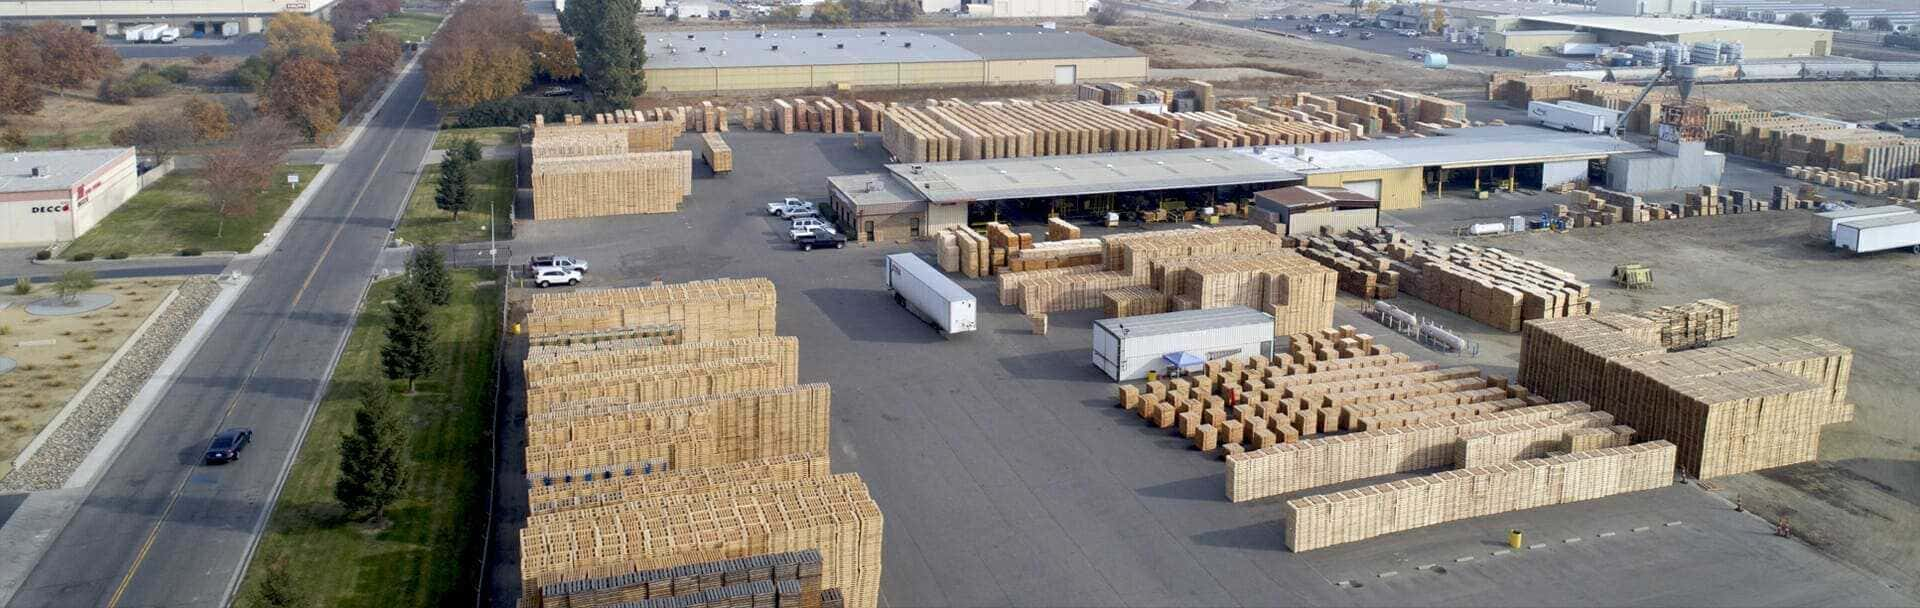 Pallets Stacked in Outdoor Warehouse Lot